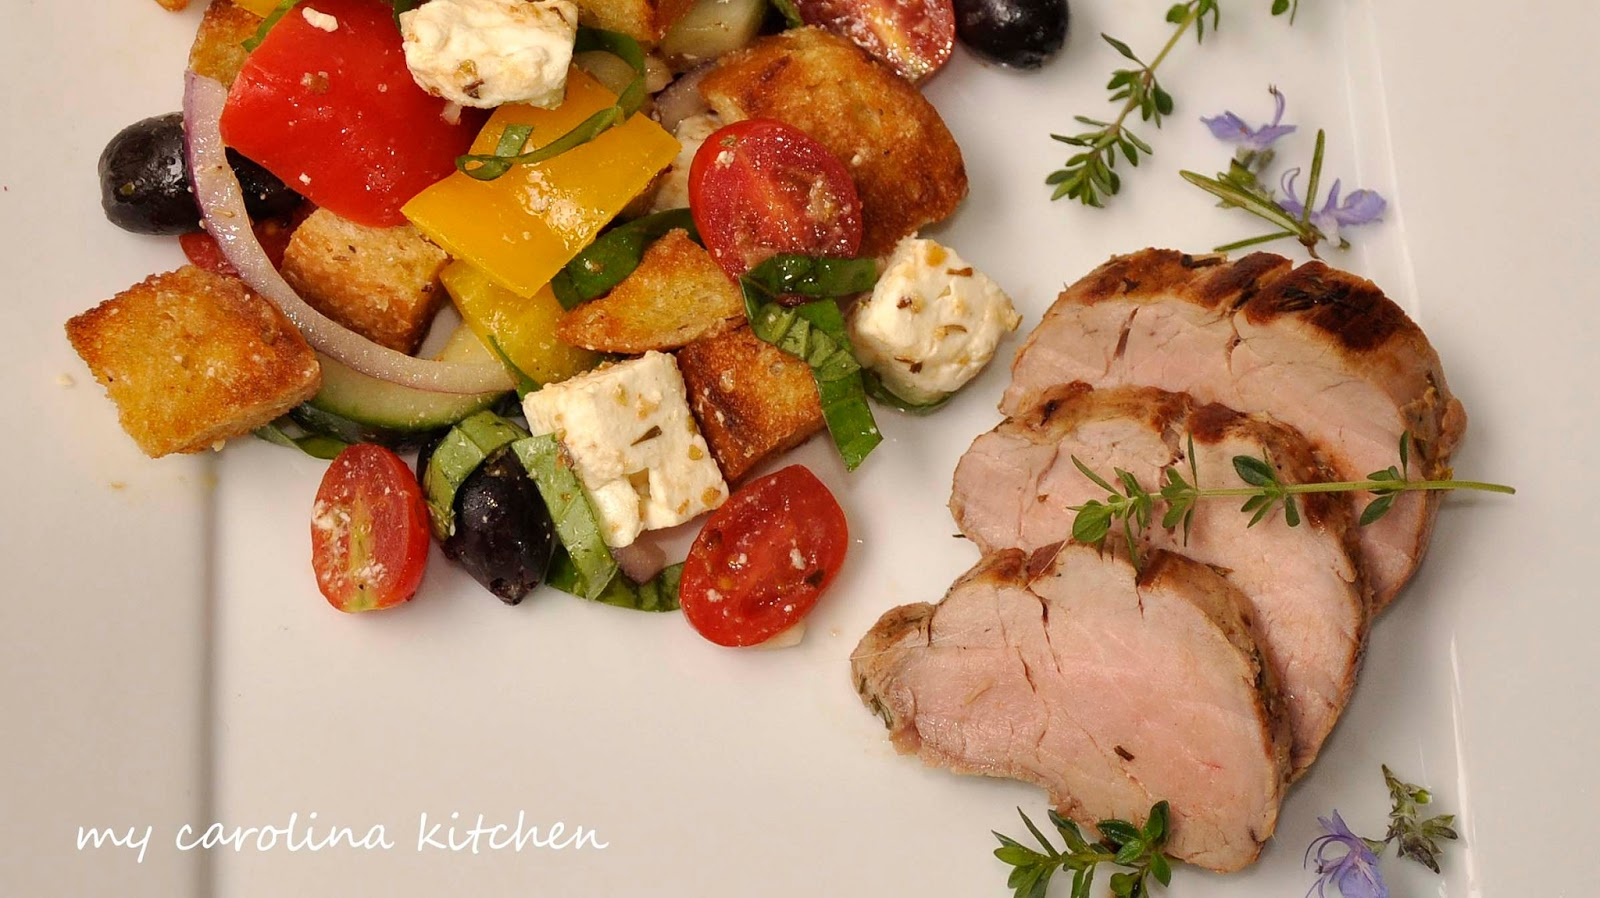 Ina Garten Tenderloin my carolina kitchen: herb-marinated pork tenderloin with a greek